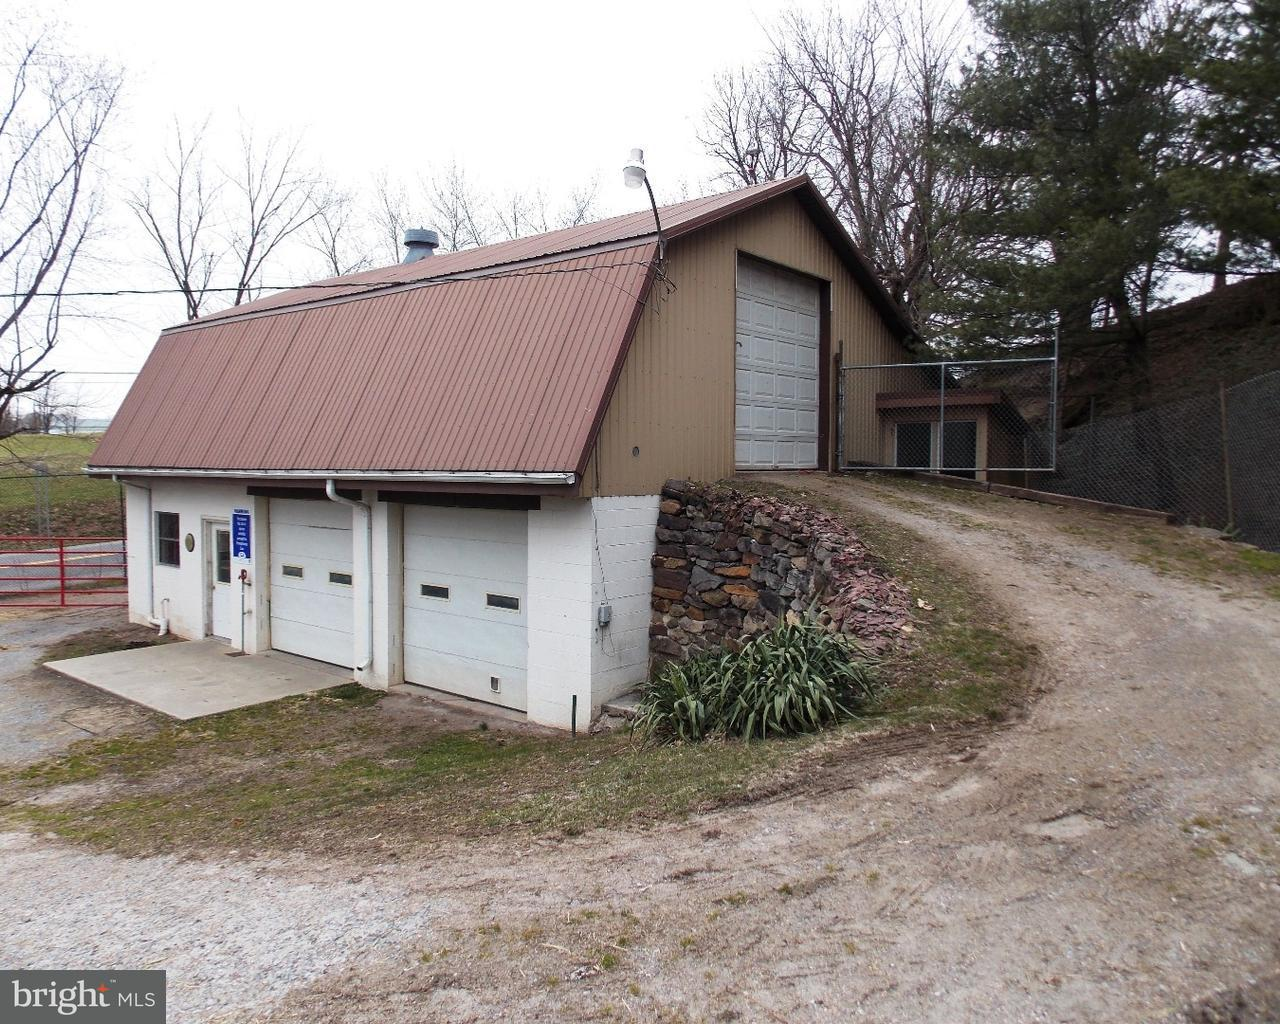 1421 UNION GROVE RD, EAST EARL - Listed at $289,000, EAST EARL